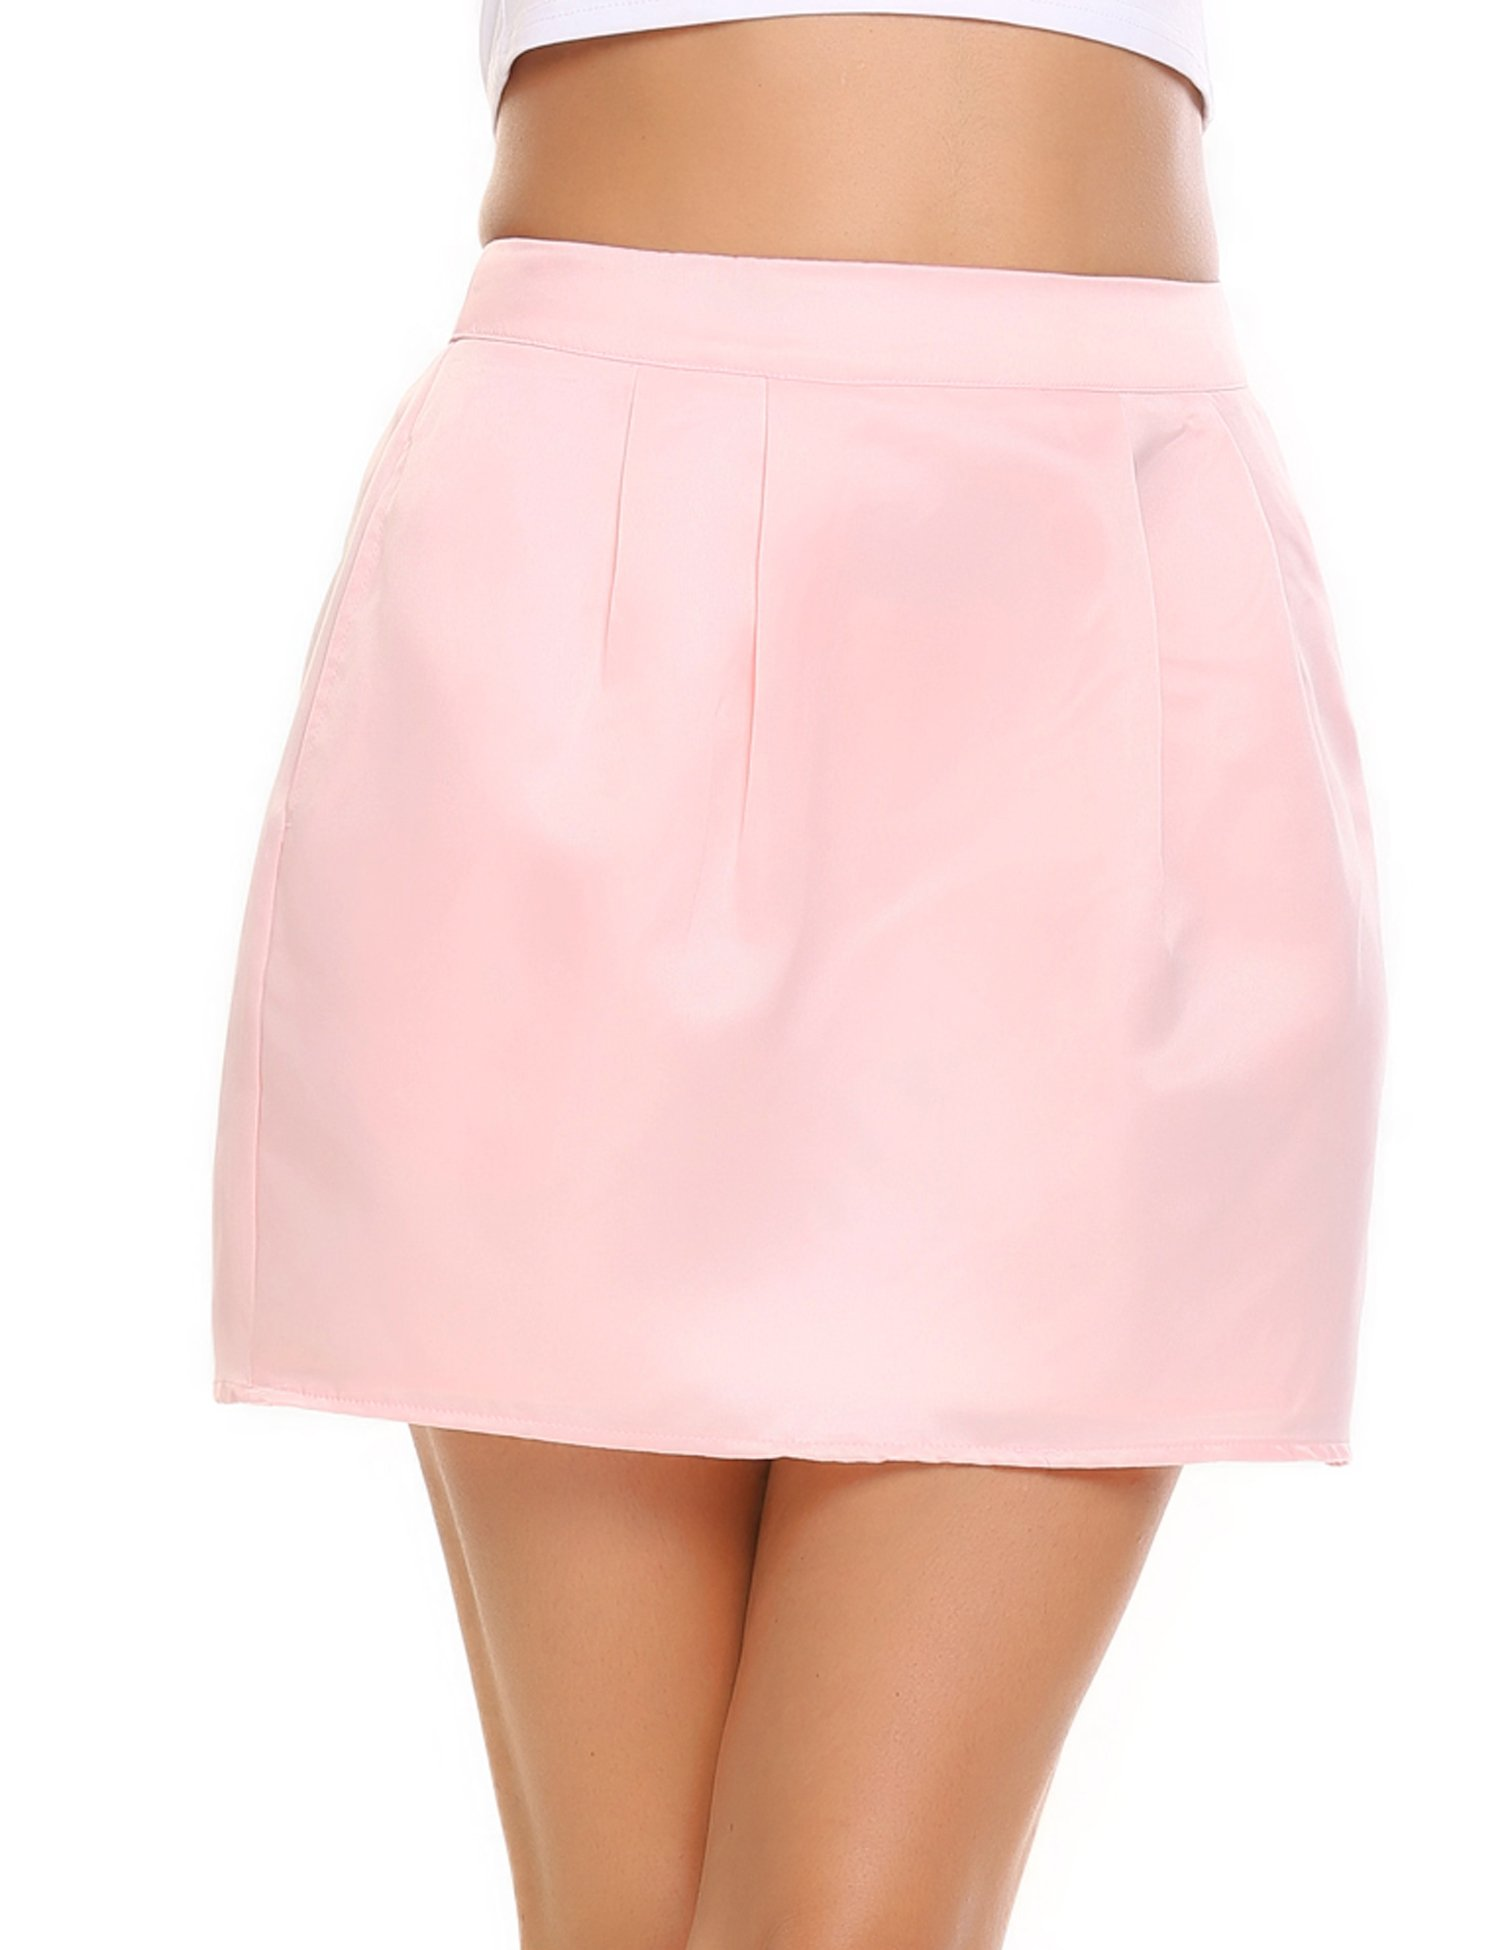 Zeagoo Women's A-line Mini Flared Skirt with Pocket and Lining Pink Medium